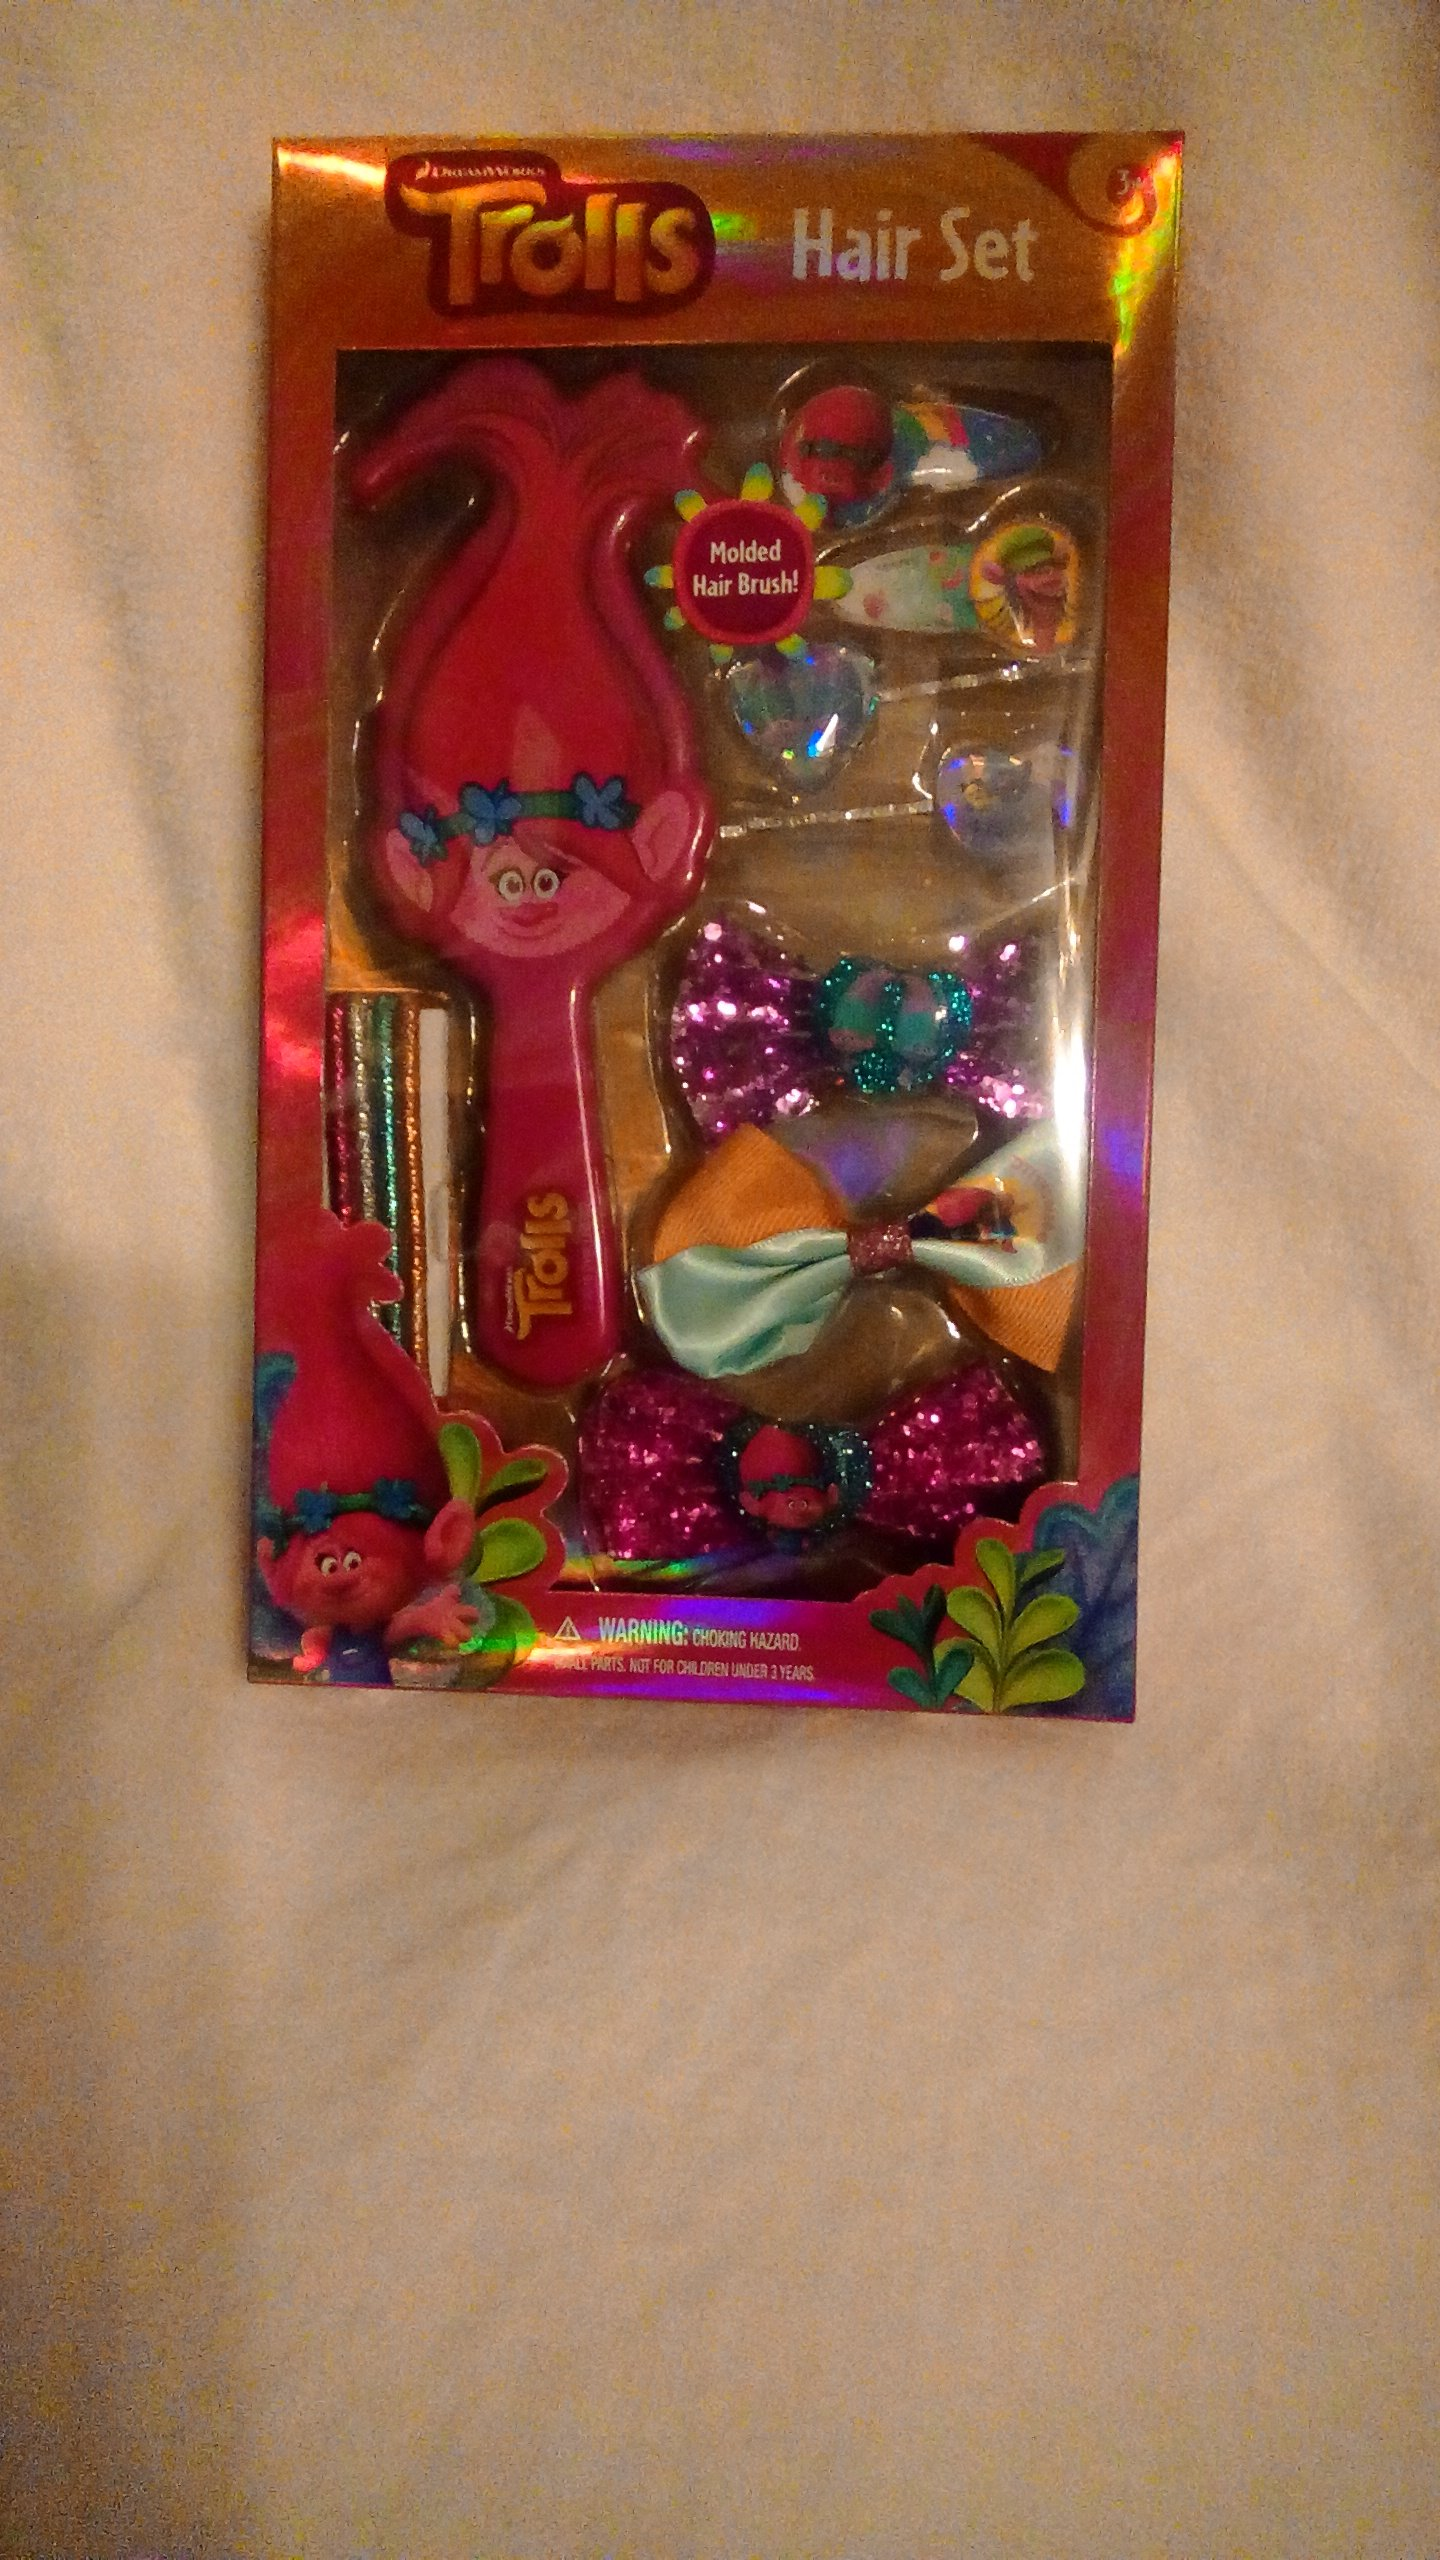 Trolls DreamWorks Hair Brush Set